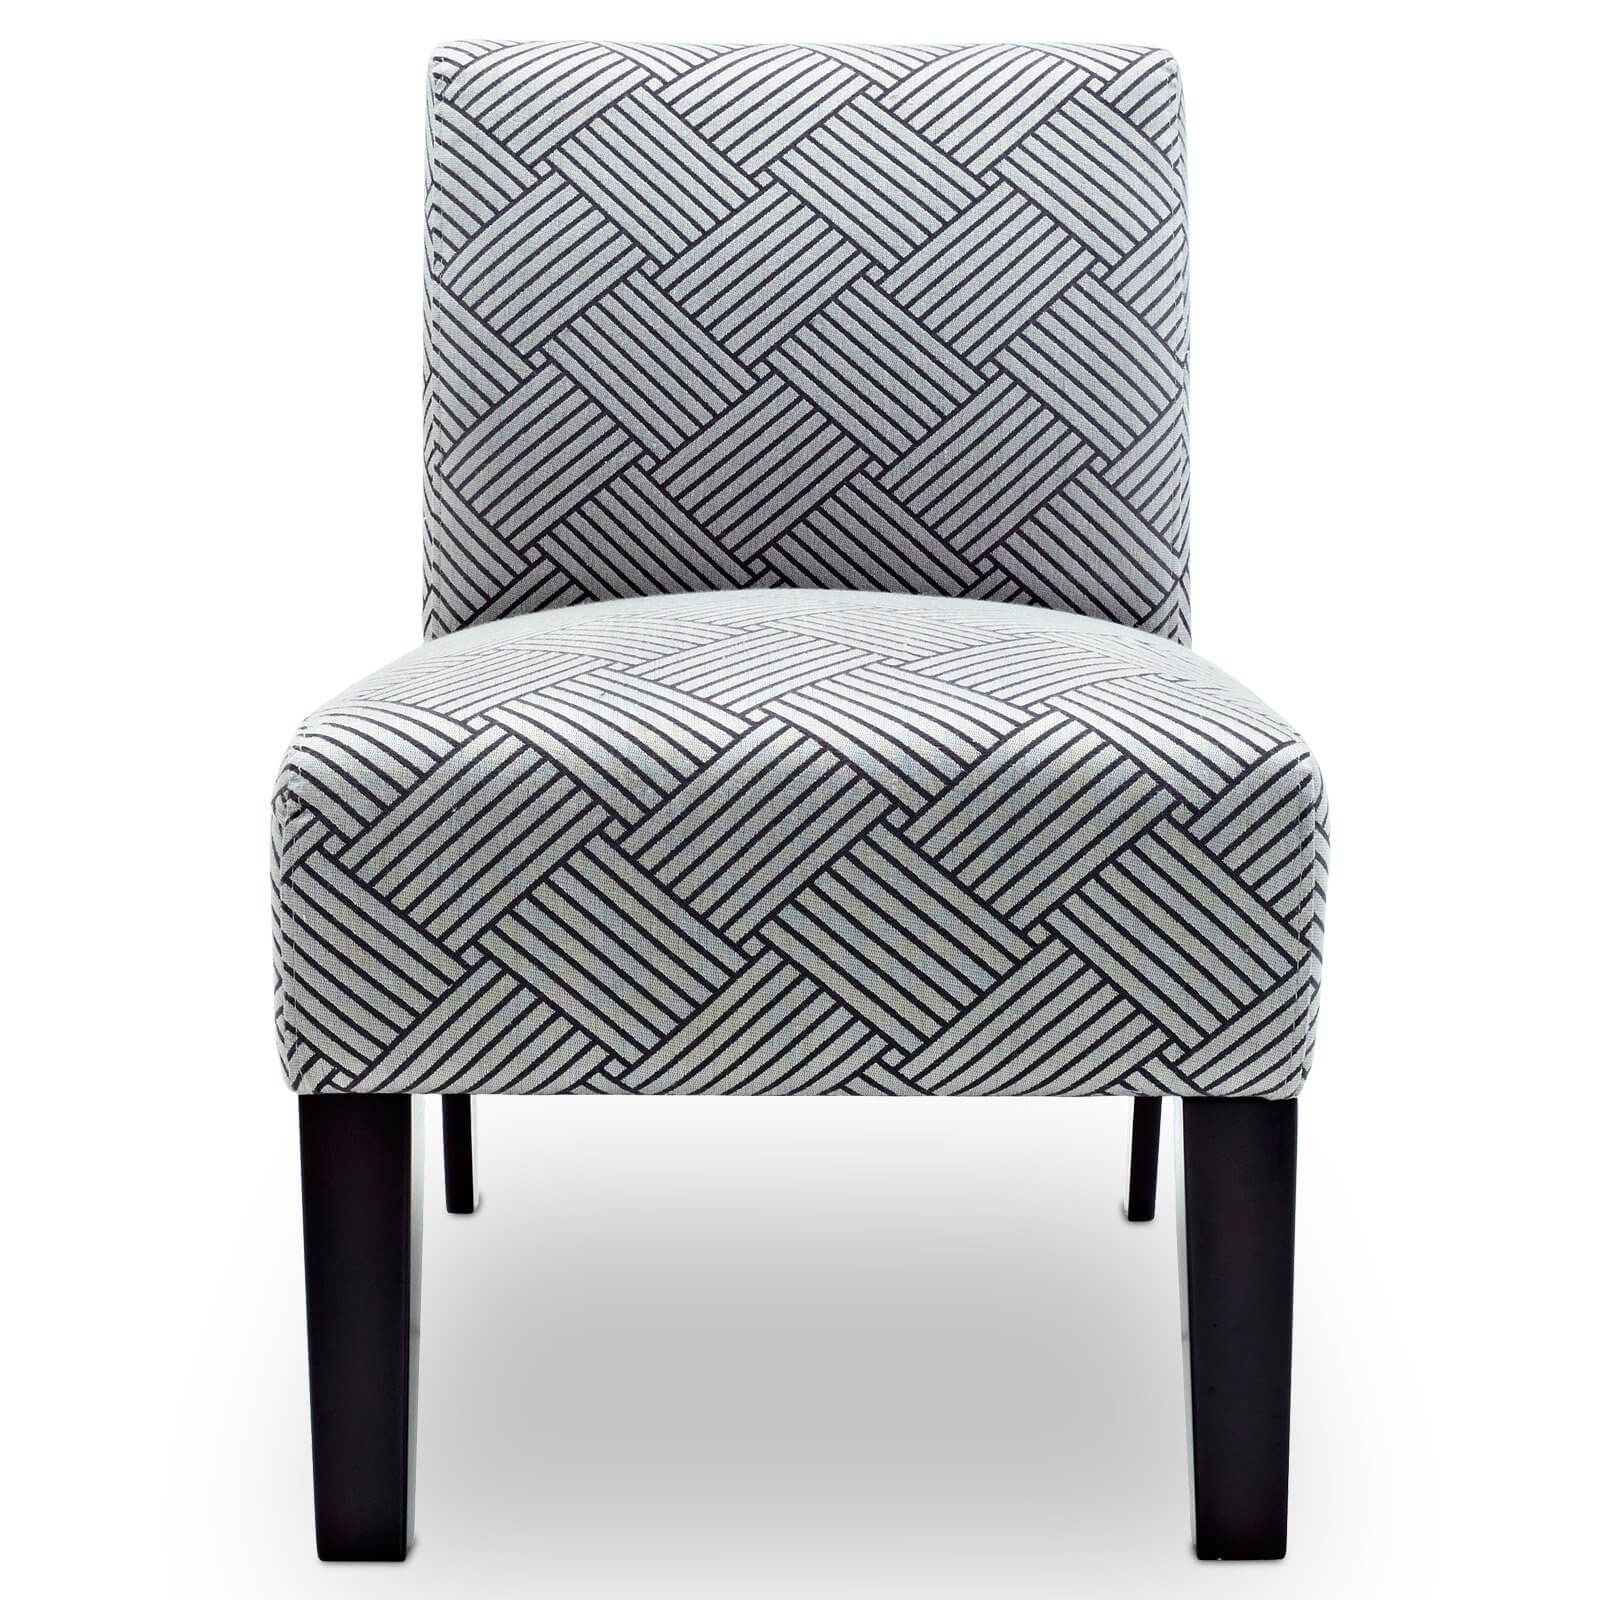 Best 10 Attractive Accent Chairs Under 100 2020 Fabric 400 x 300